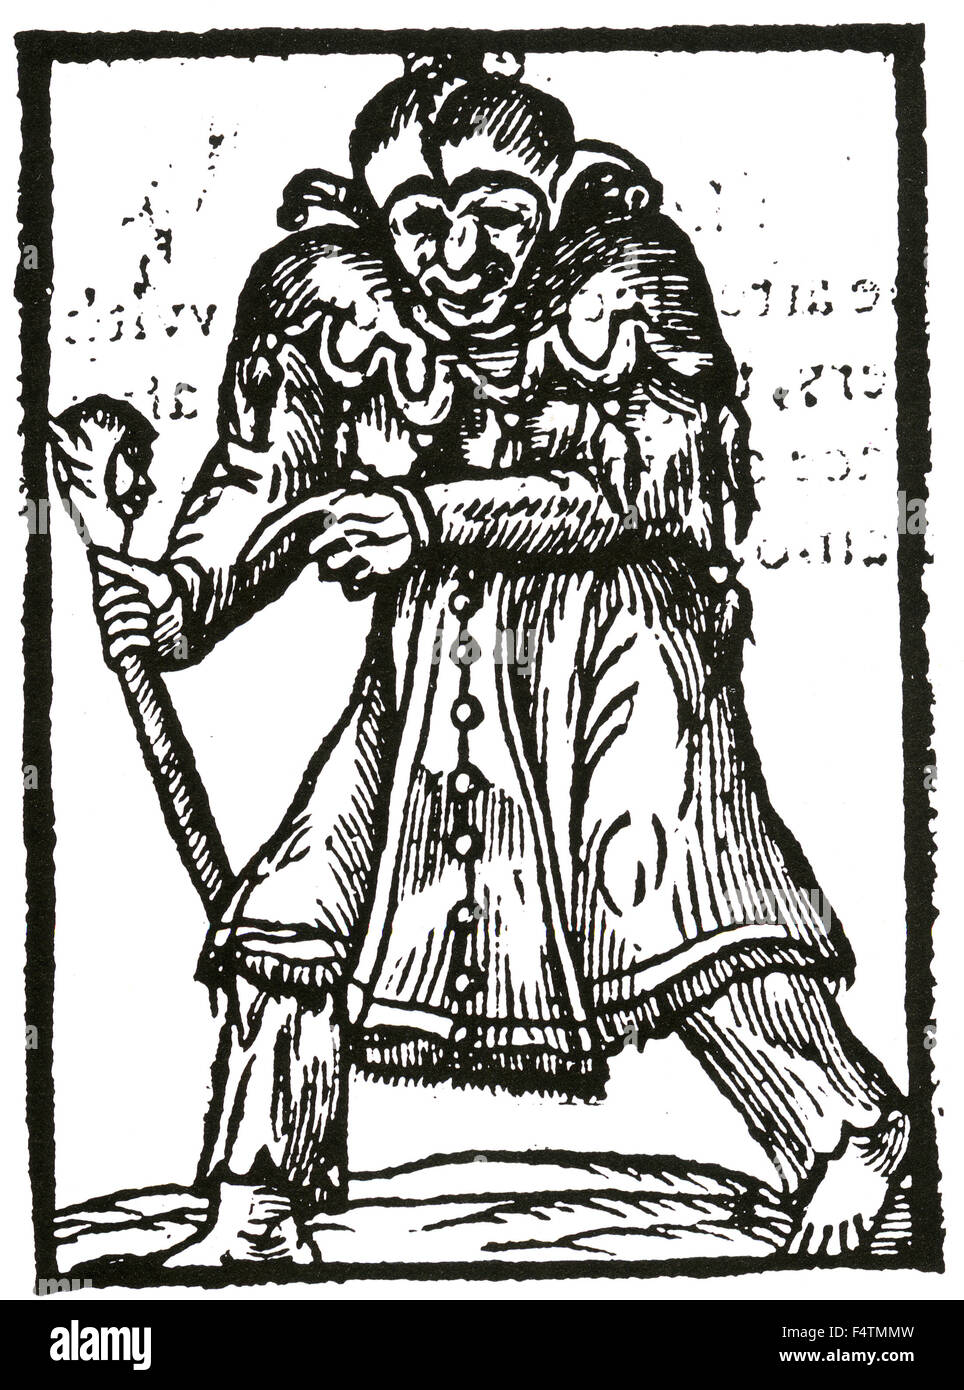 WITCHCRAFT Woodcut of a witch from the 1593 pamphlet 'A Most Wicked Worke of a Wretched Witch...' ascribed - Stock Image